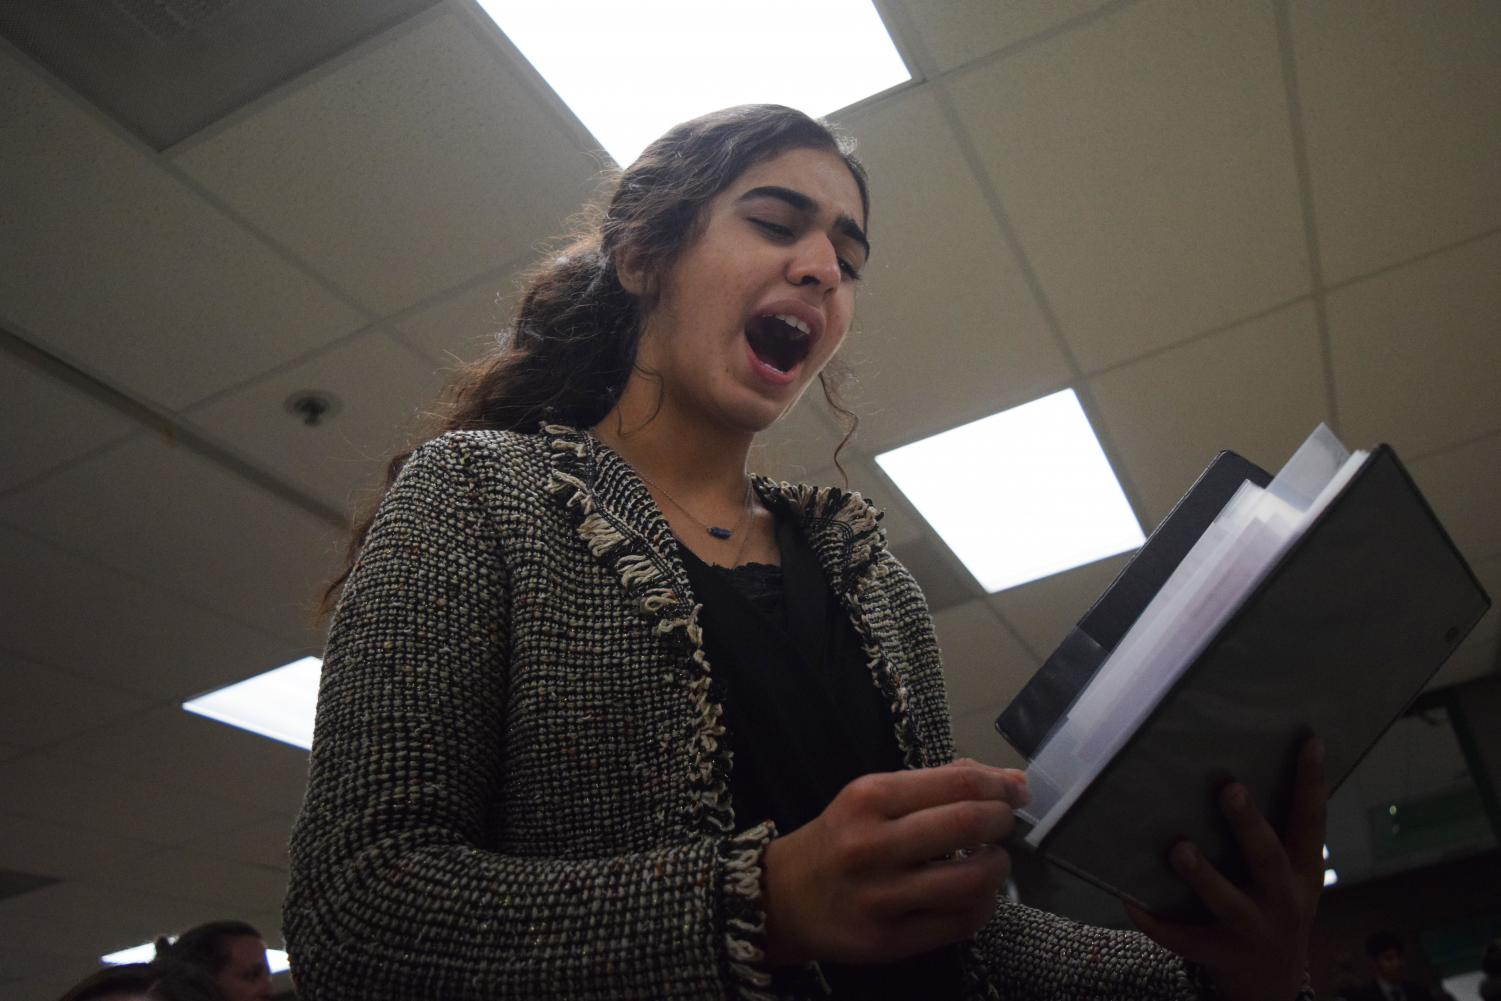 "Making final adjustments during practice, junior Fatema Rehmani prepares for the Randy Pierce Winter Classic at Pattonville High School Dec. 7, 2018. Rehmani competed in Program Oral Interpretation, an event in which students incorporate various selections of literature into a 10 minute performance. ""This year, I explored some different events in speech and debate, and I'm so grateful for all of the various experiences I've gained,"" Rehmani said. ""But I have noticed there are definitely expectations for certain events or debate in regards to whether it's for guys or for girls, which is sometimes limiting and frustrating."""